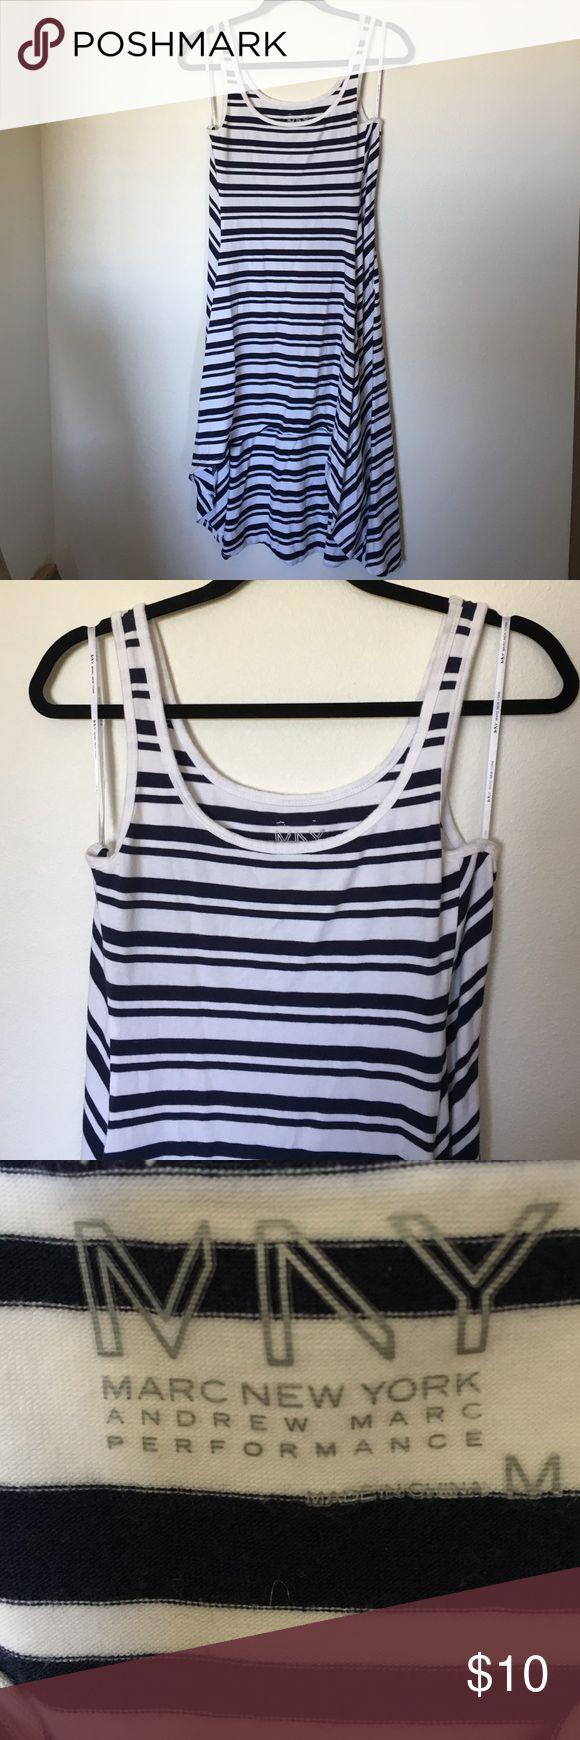 White & Navy Striped Cotton Dress Extremely comfortable Marc New York cotton dress! High-low style. Marc New York Dresses High Low